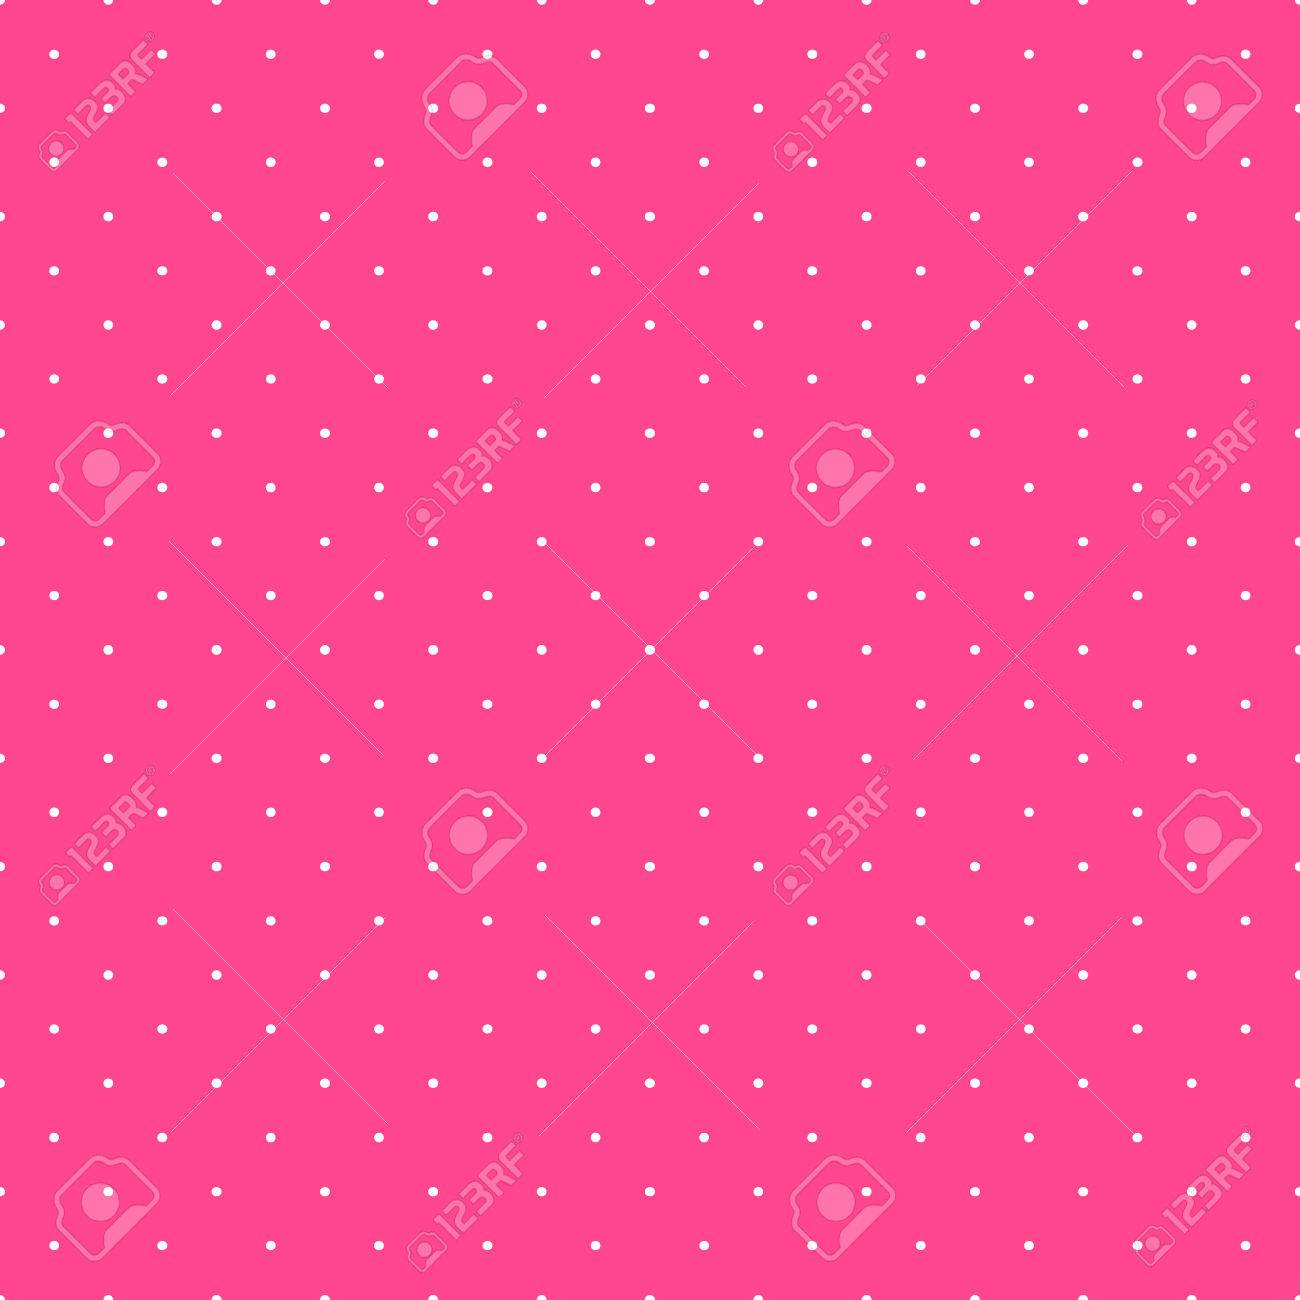 Cute pink seamless pattern endless texture for wallpaper fill cute pink seamless pattern endless texture for wallpaper fill web page background voltagebd Images